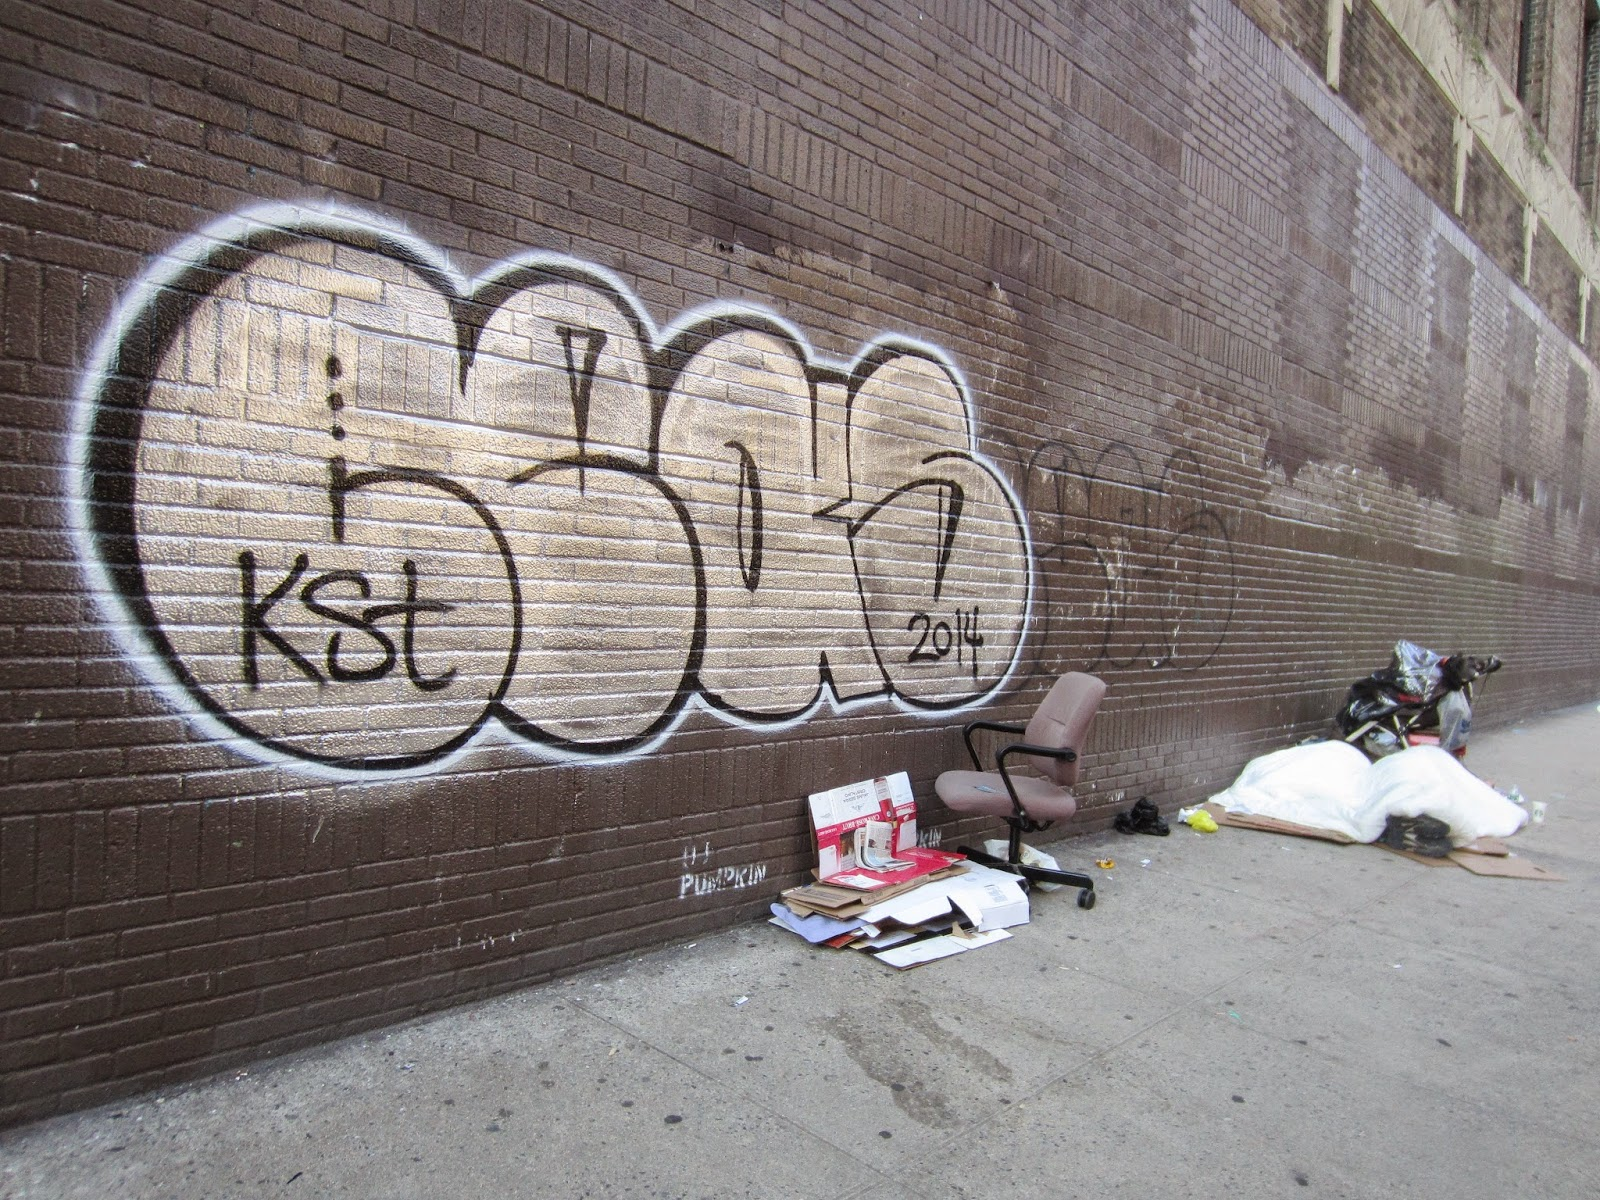 Ev Grieve 1st Tag Returns To Verizon S Freshly Painted Brown Wall